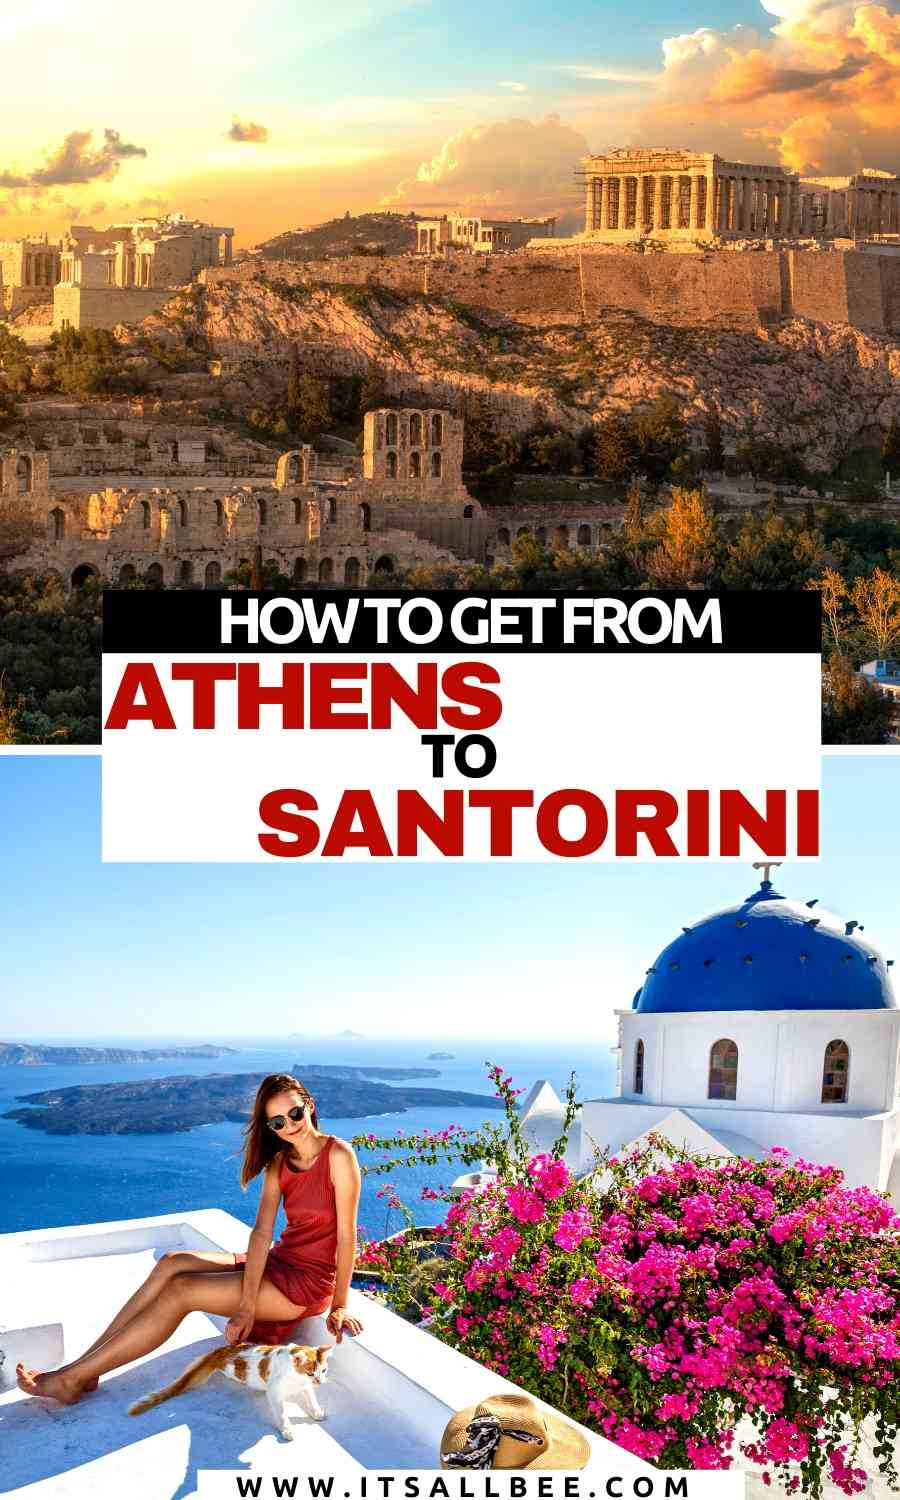 How To Get to Santorini from Athens